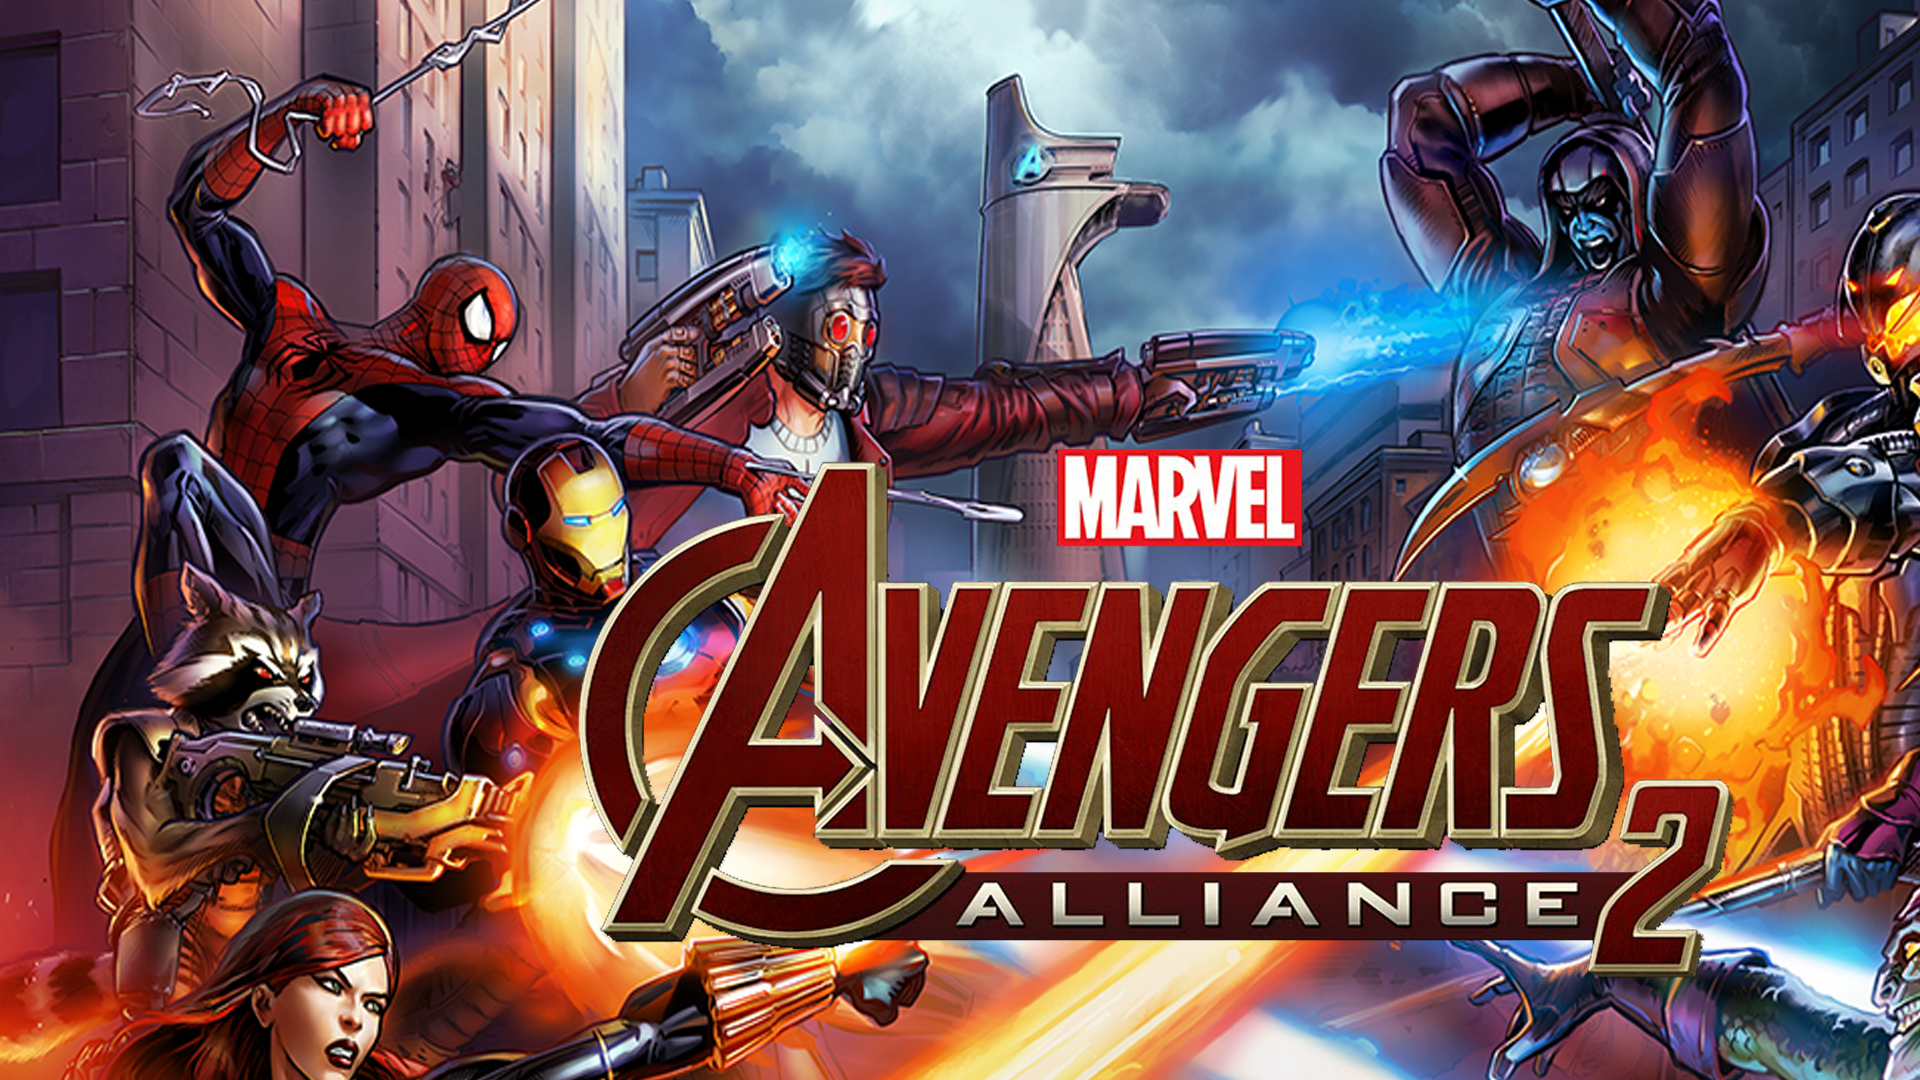 A first look at Marvel Avengers Alliance 2